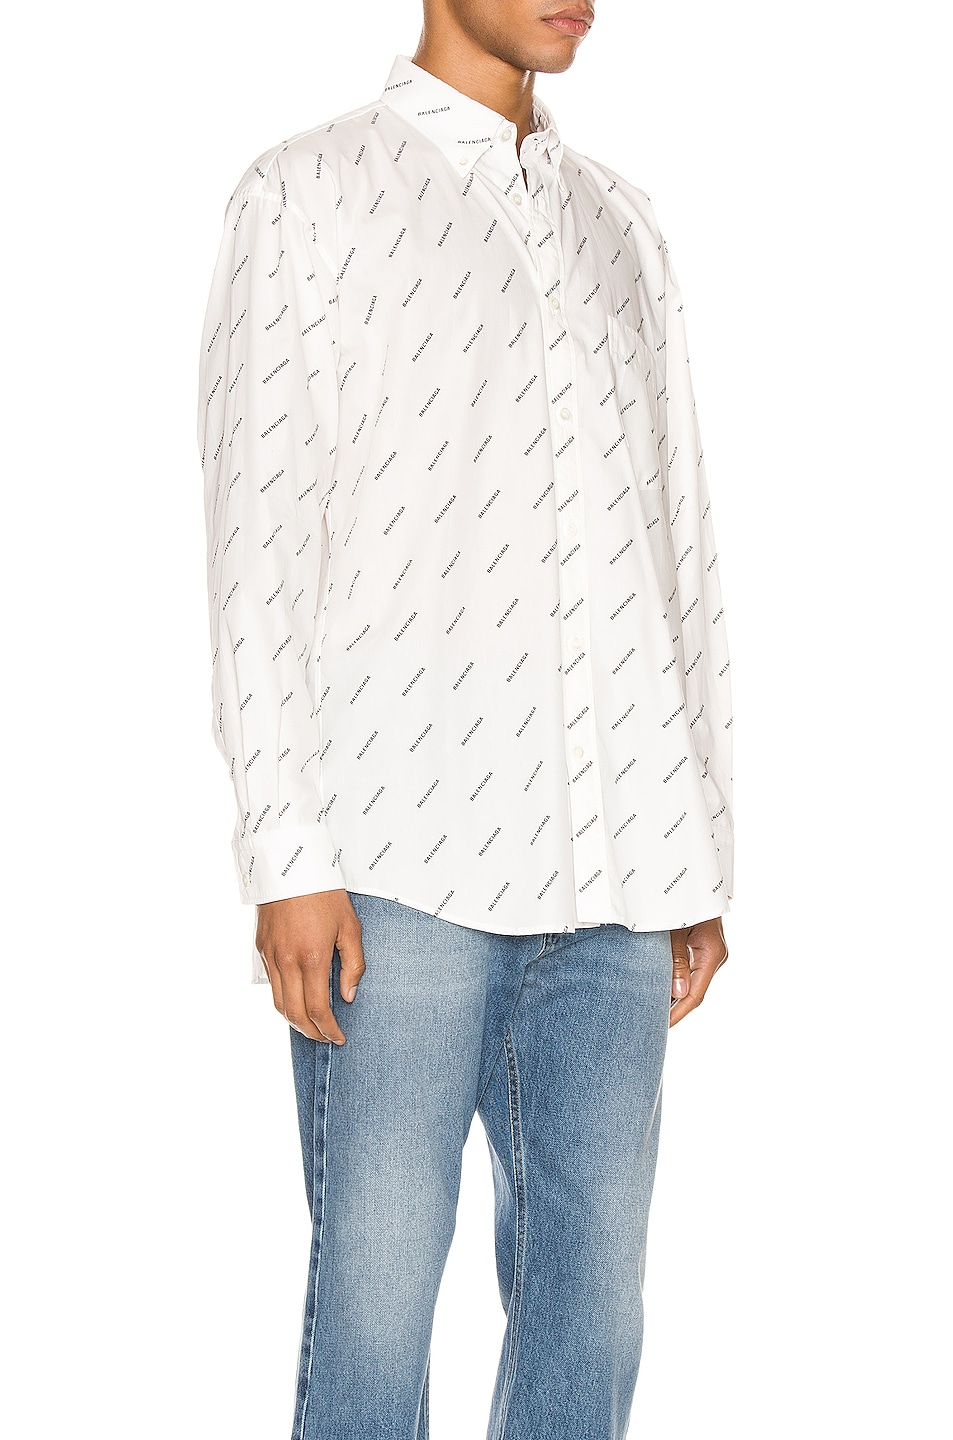 Image 2 of Balenciaga Normal Fit Long Sleeve Shirt in White & Black